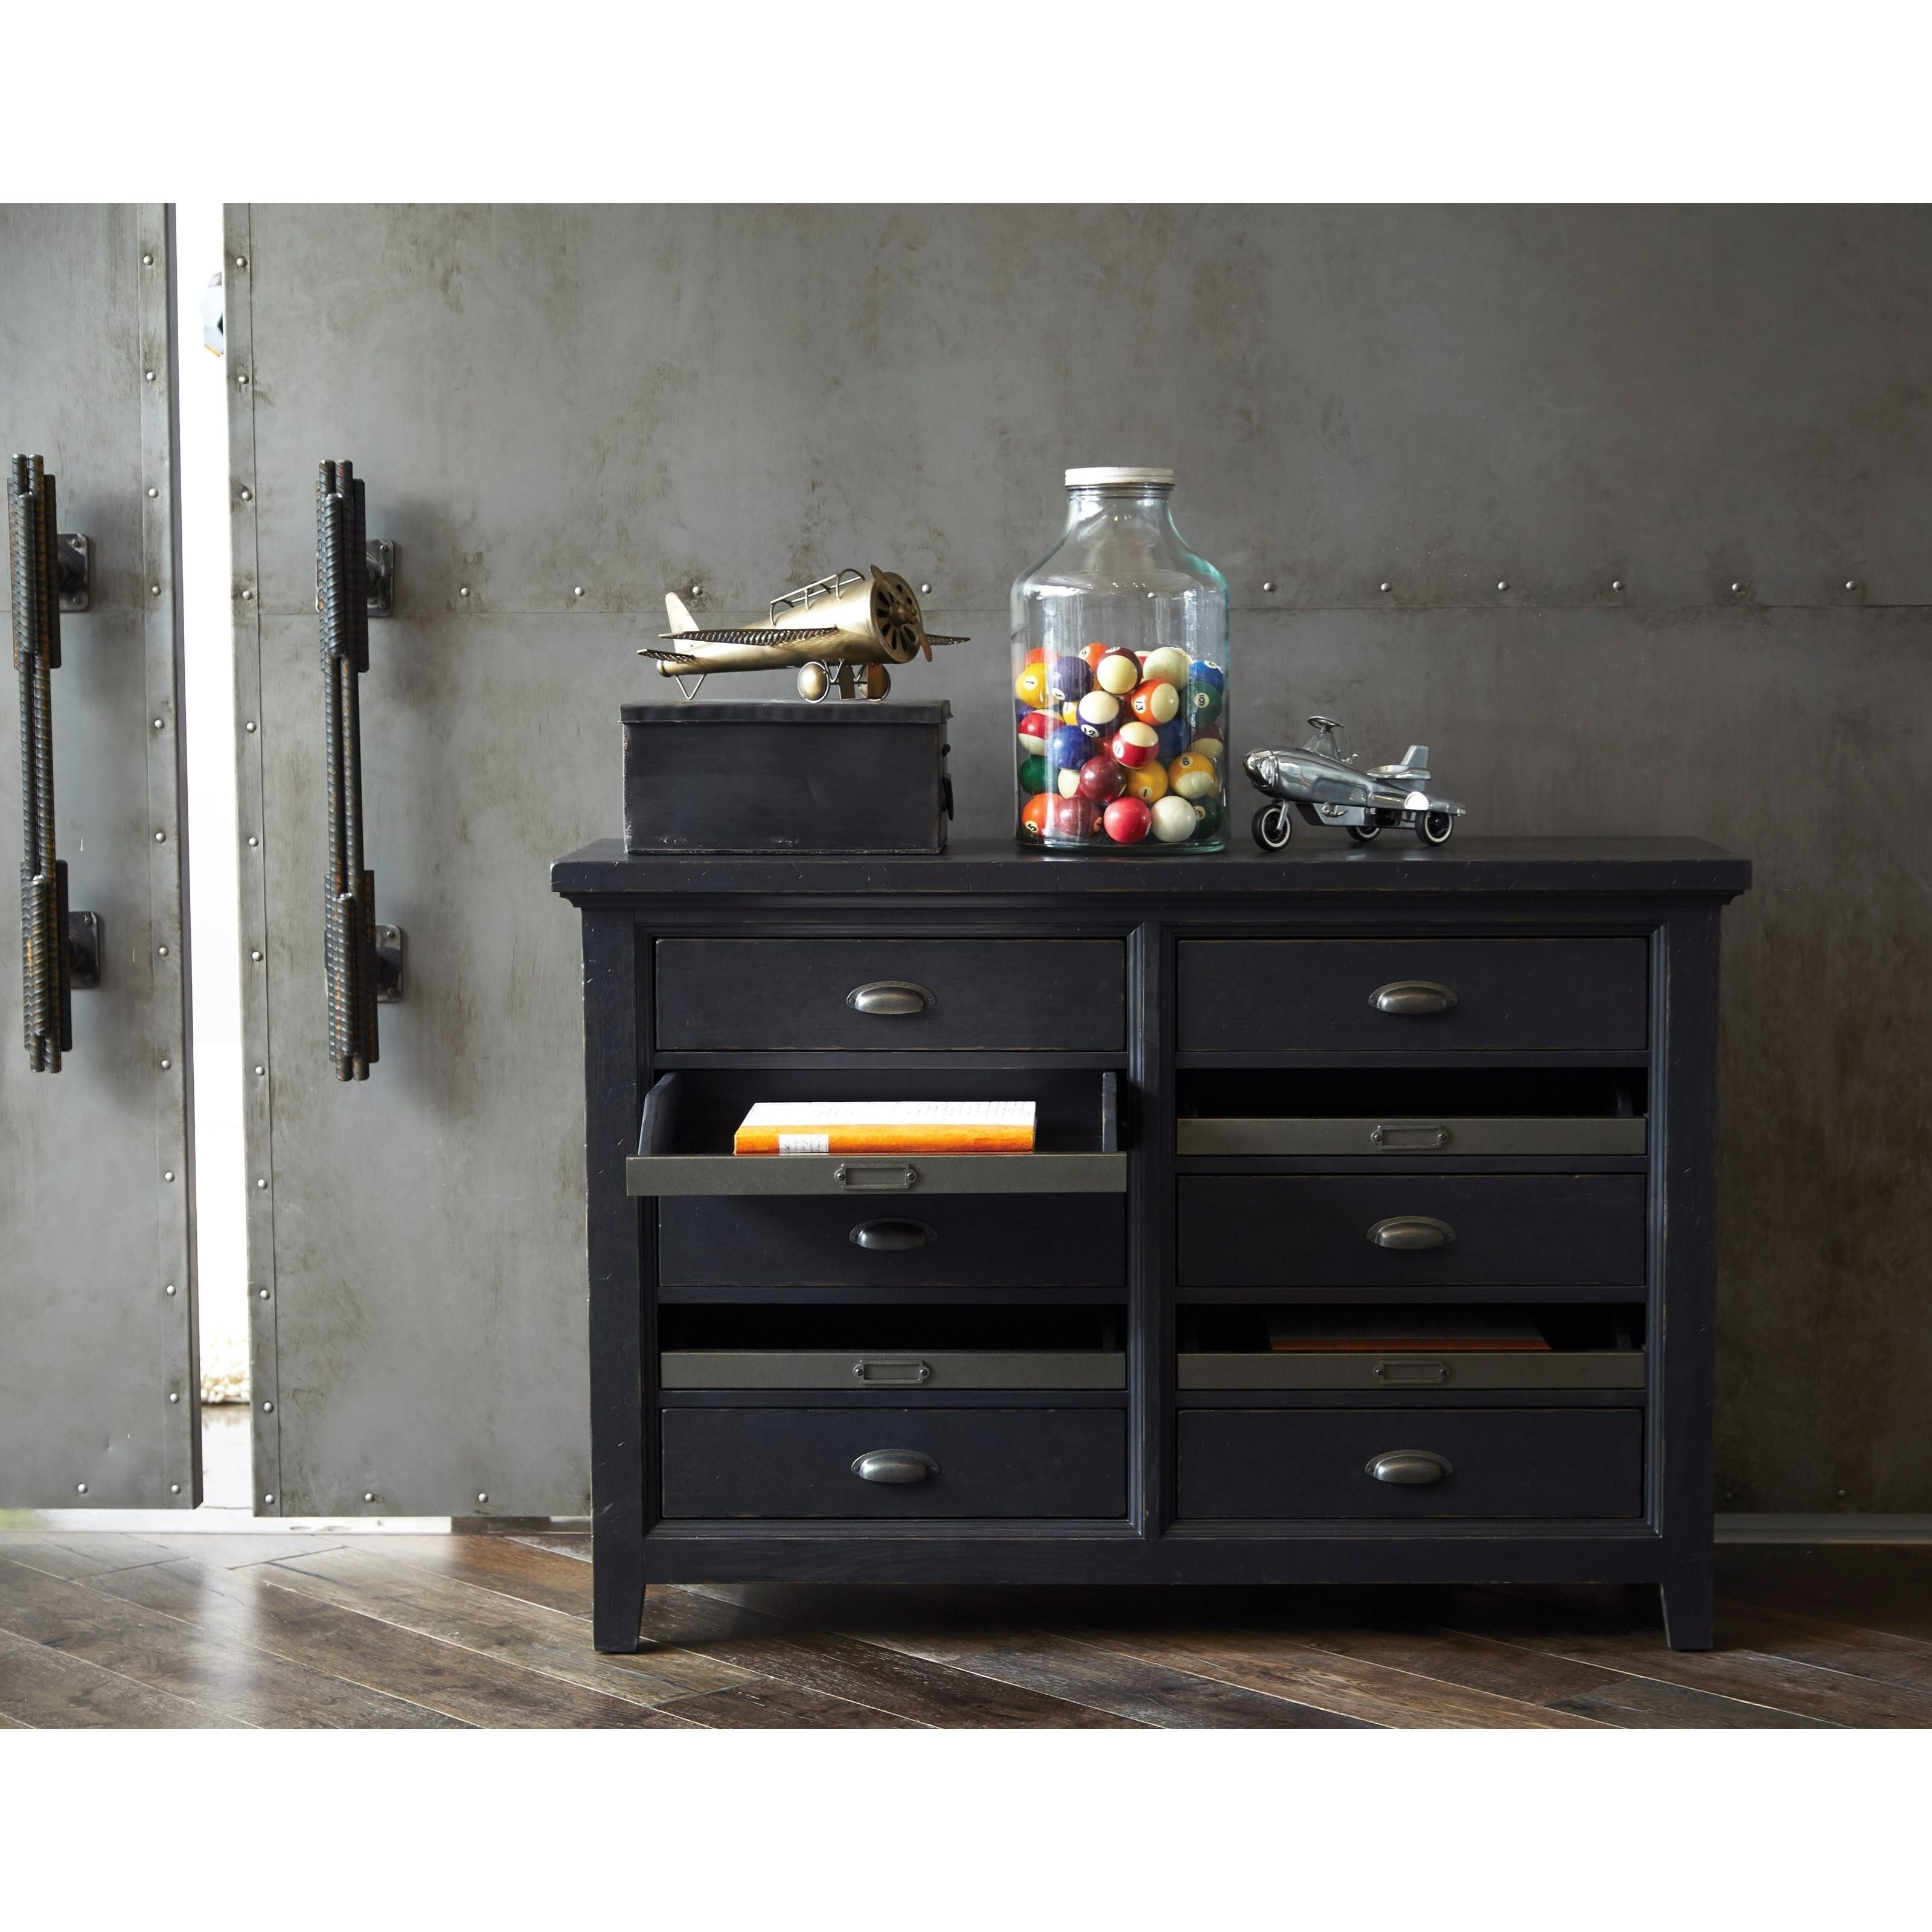 urban accents furniture. Samuel Lawrence Vintage/Urban AccentsServer Urban Accents Furniture C